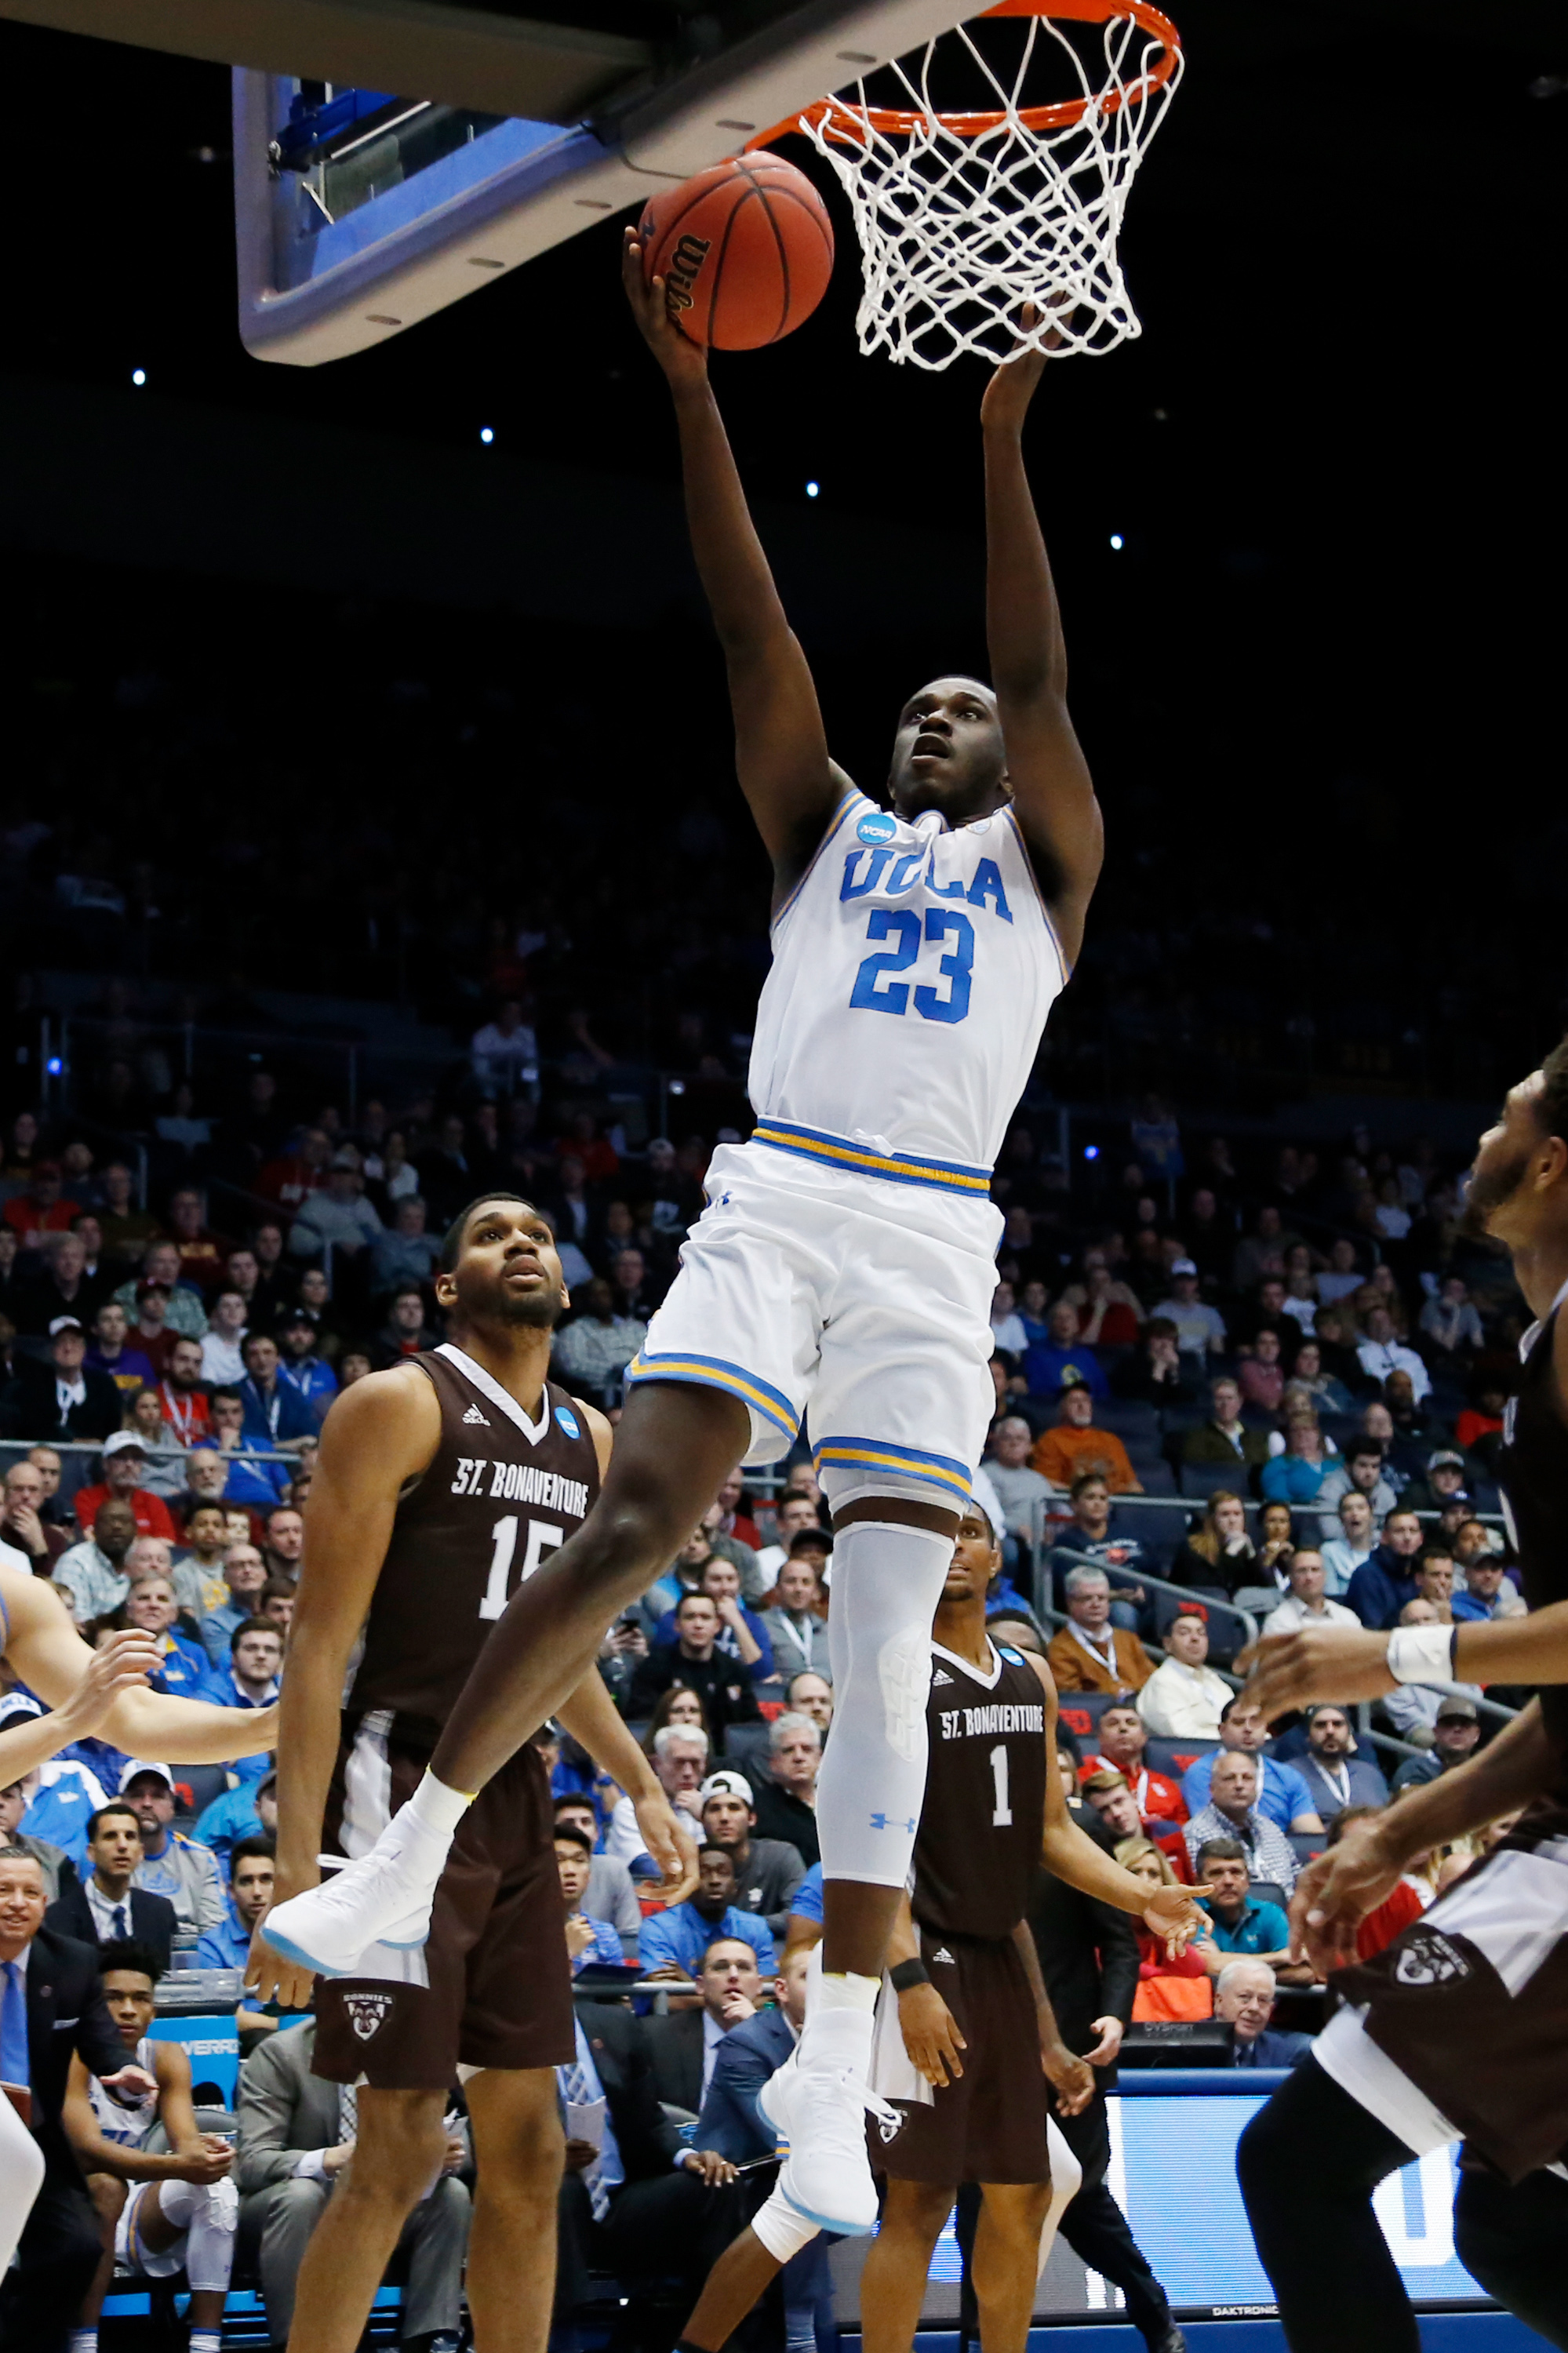 Prince Ali #23 of the UCLA Bruins attempts a lay up against the St. Bonaventure Bonnies